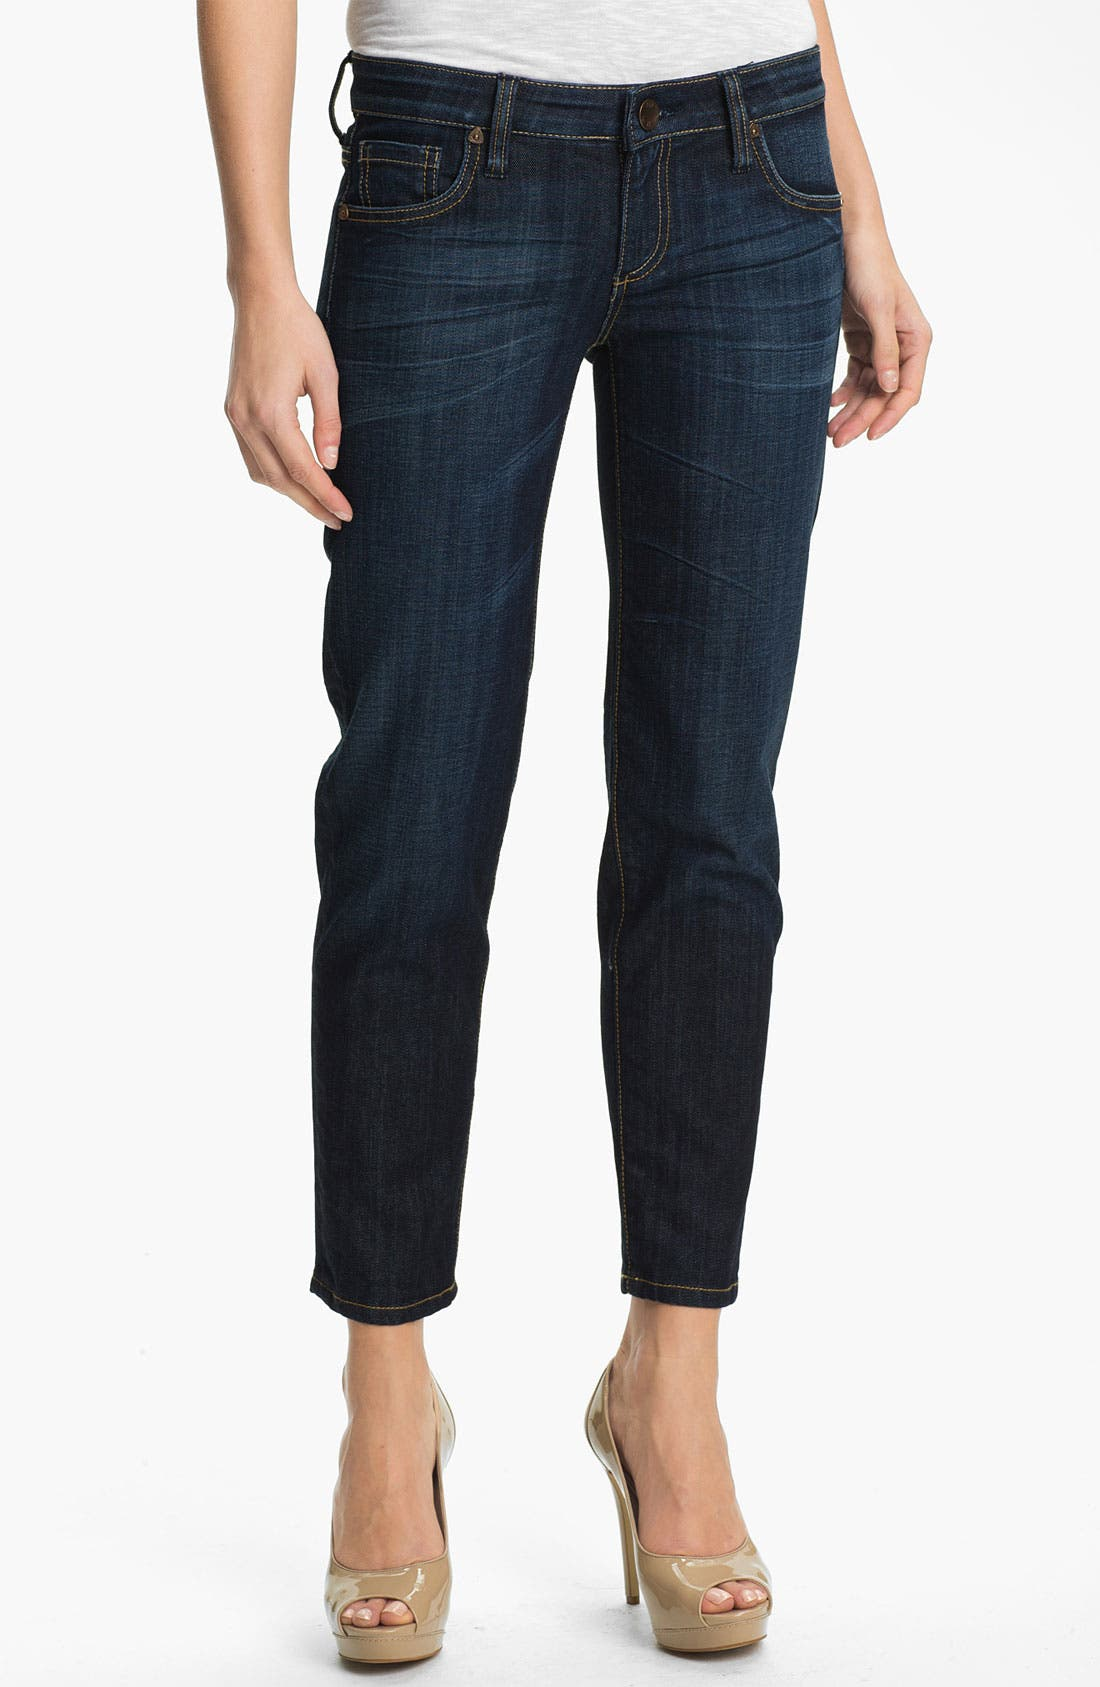 Alternate Image 1 Selected - KUT from the Kloth 'Audrey' Skinny Jeans (Positive)